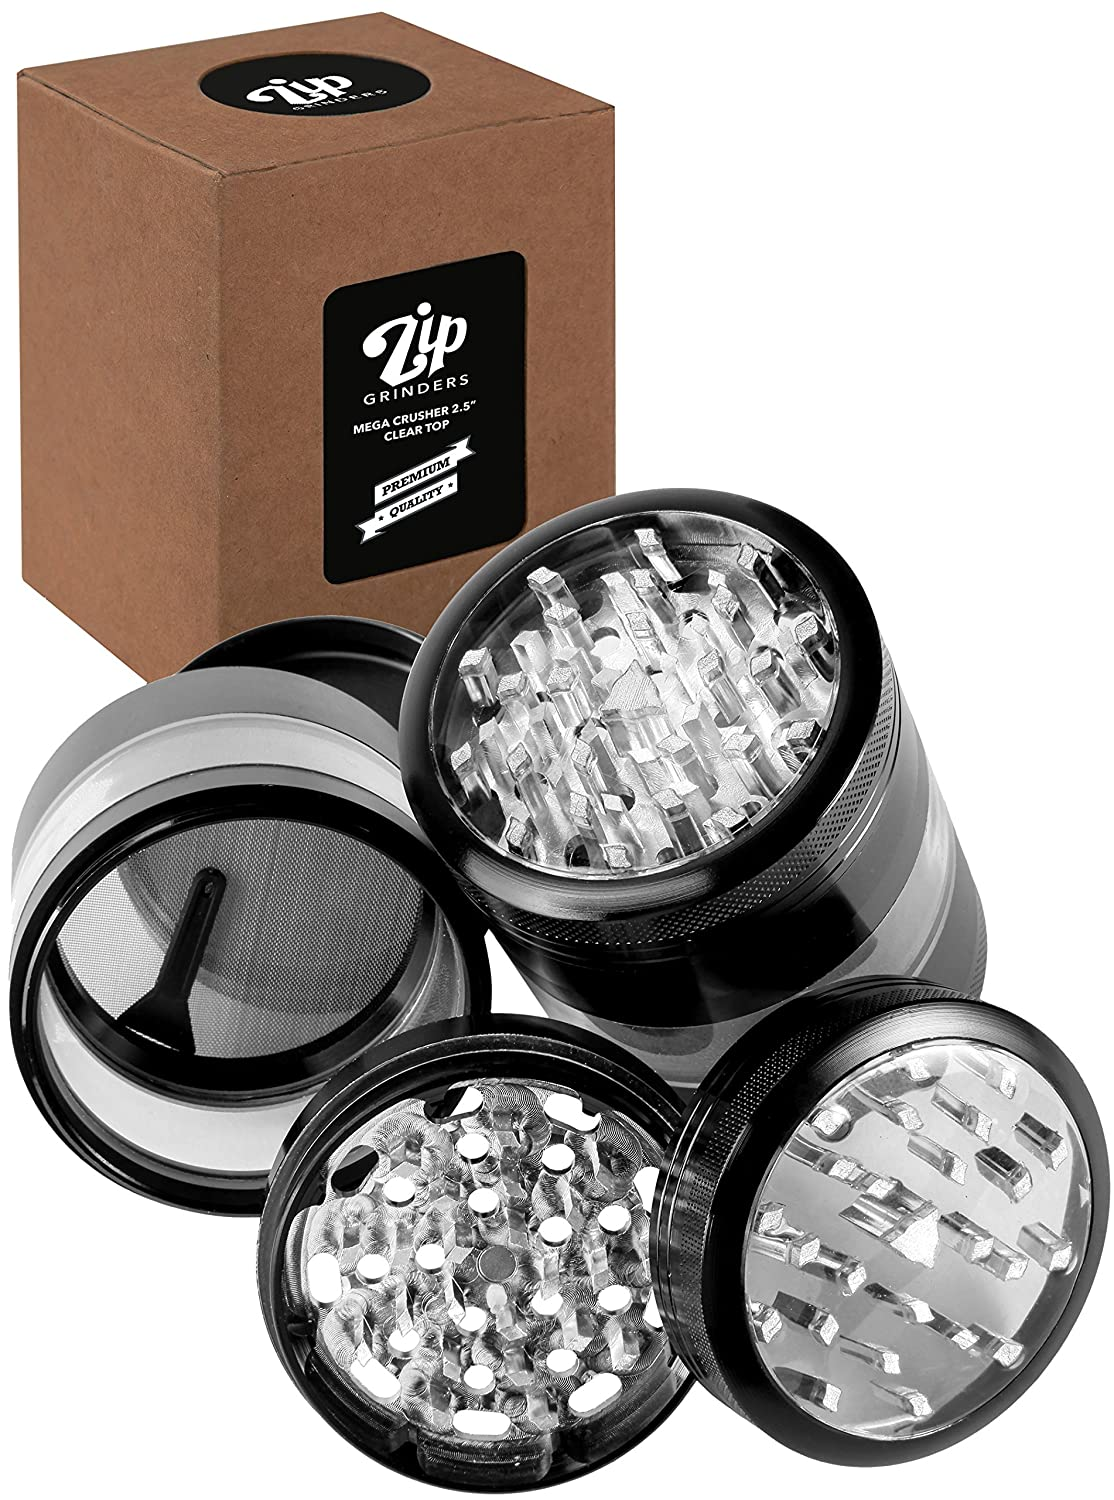 Zip Grinders - Large Herb Grinder - Four Piece with Pollen Catcher